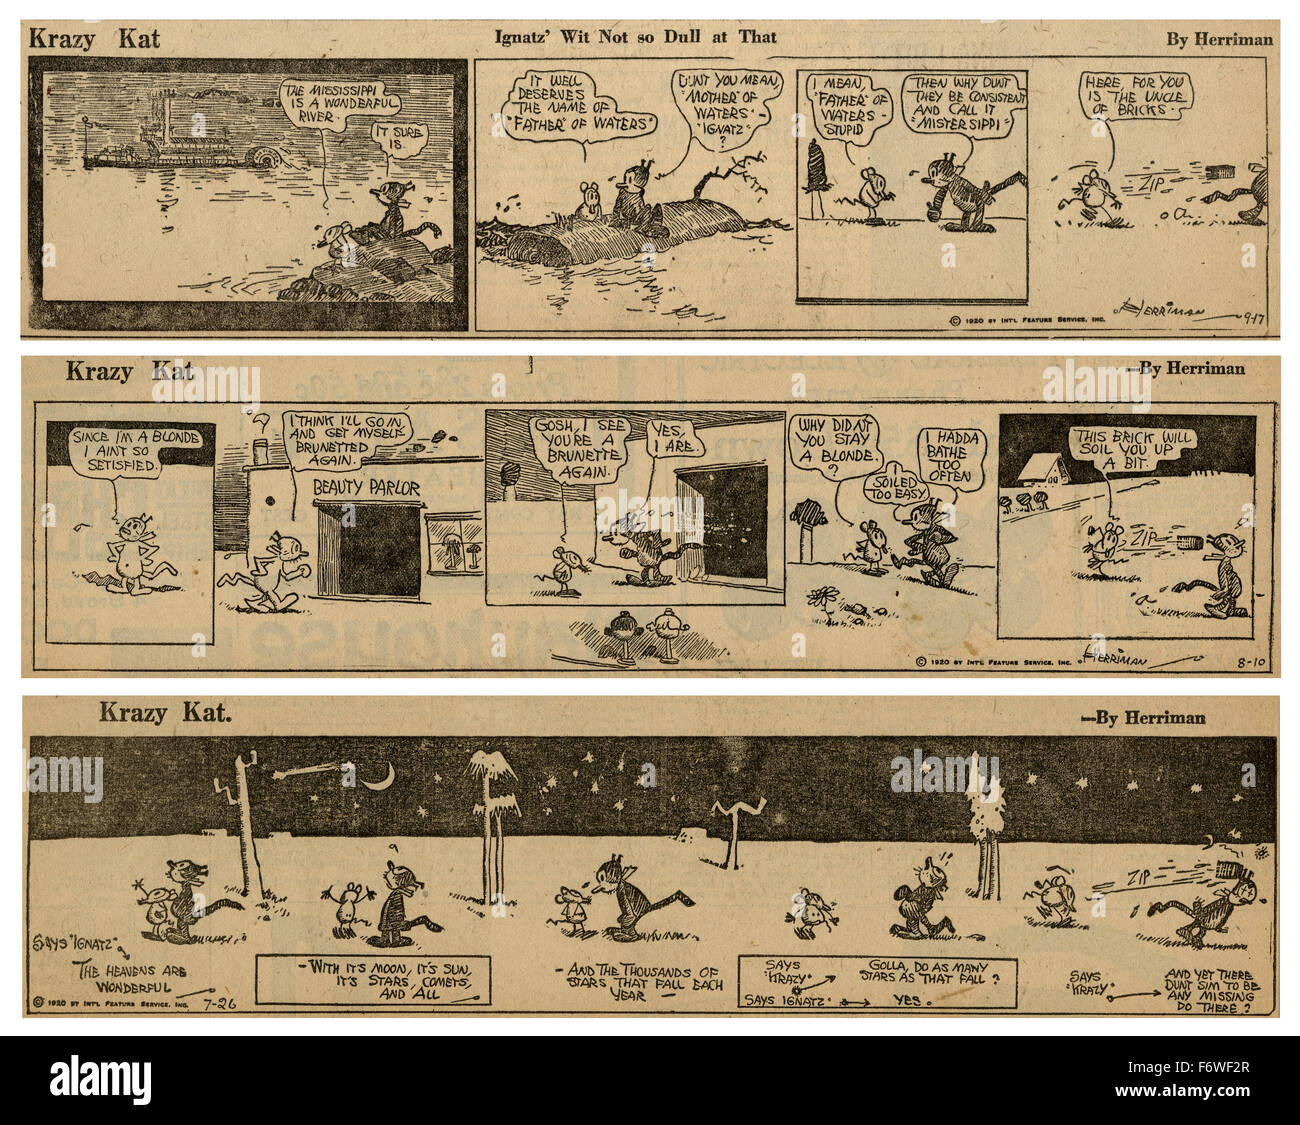 Three 1920 Krazy Kat comic strips by George Herriman, featuring Krazy Kat and Ignatz Mouse. - Stock Image